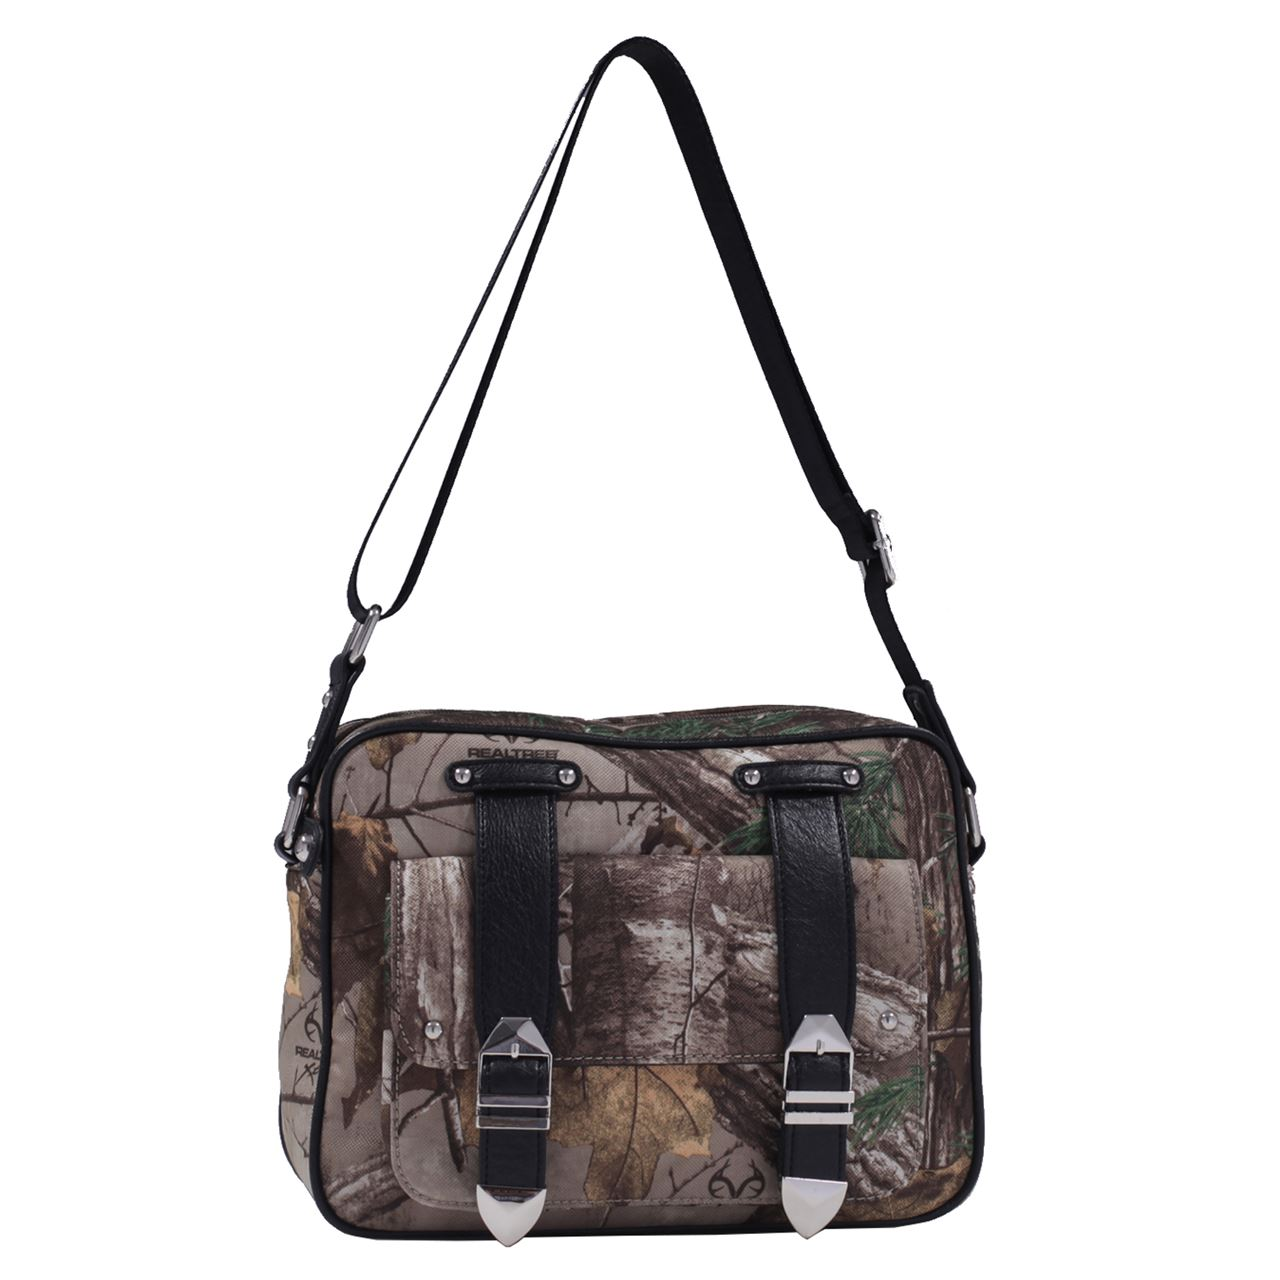 Purse : Realtree Camouflage Concealed Carry Gun Purse Handbag